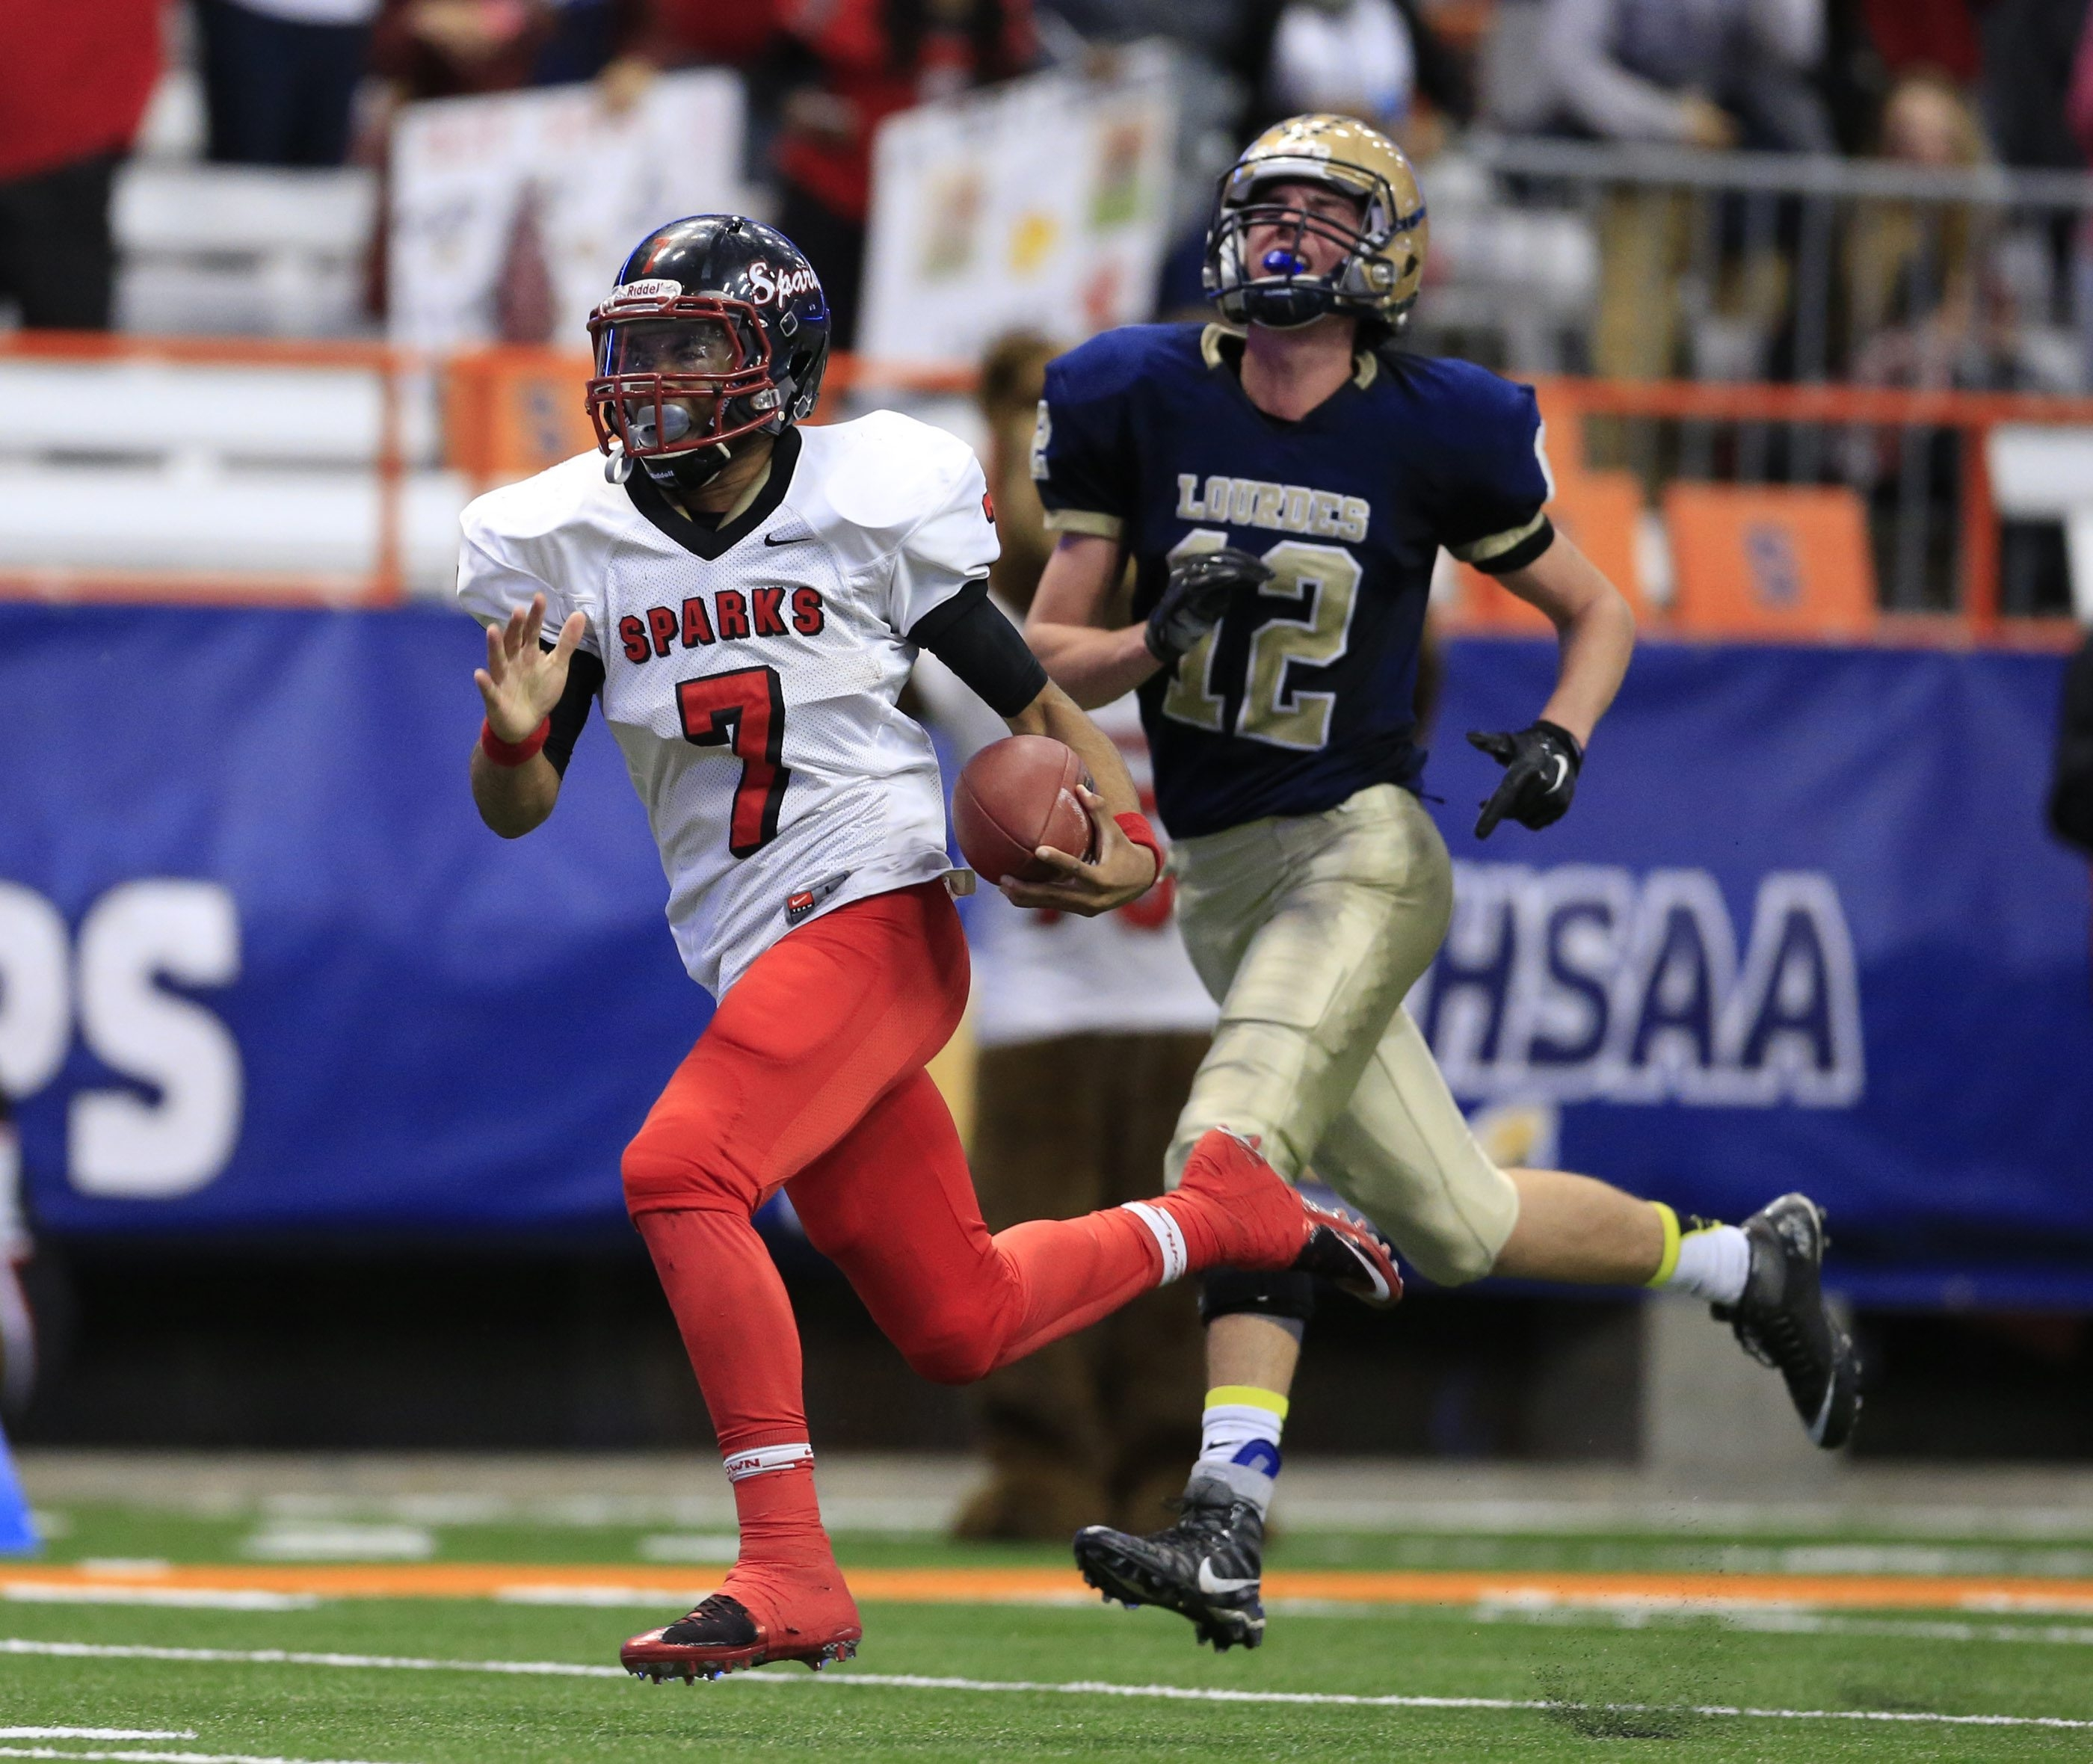 South Park quarterback Tyree Brown runs for a touchdown against Our Lady of Lourdes during the first half of the NYSPHSAA Class A state championship in Syracuse. Brown finished with 217 yards on 11 carries and four rushing touchdowns.